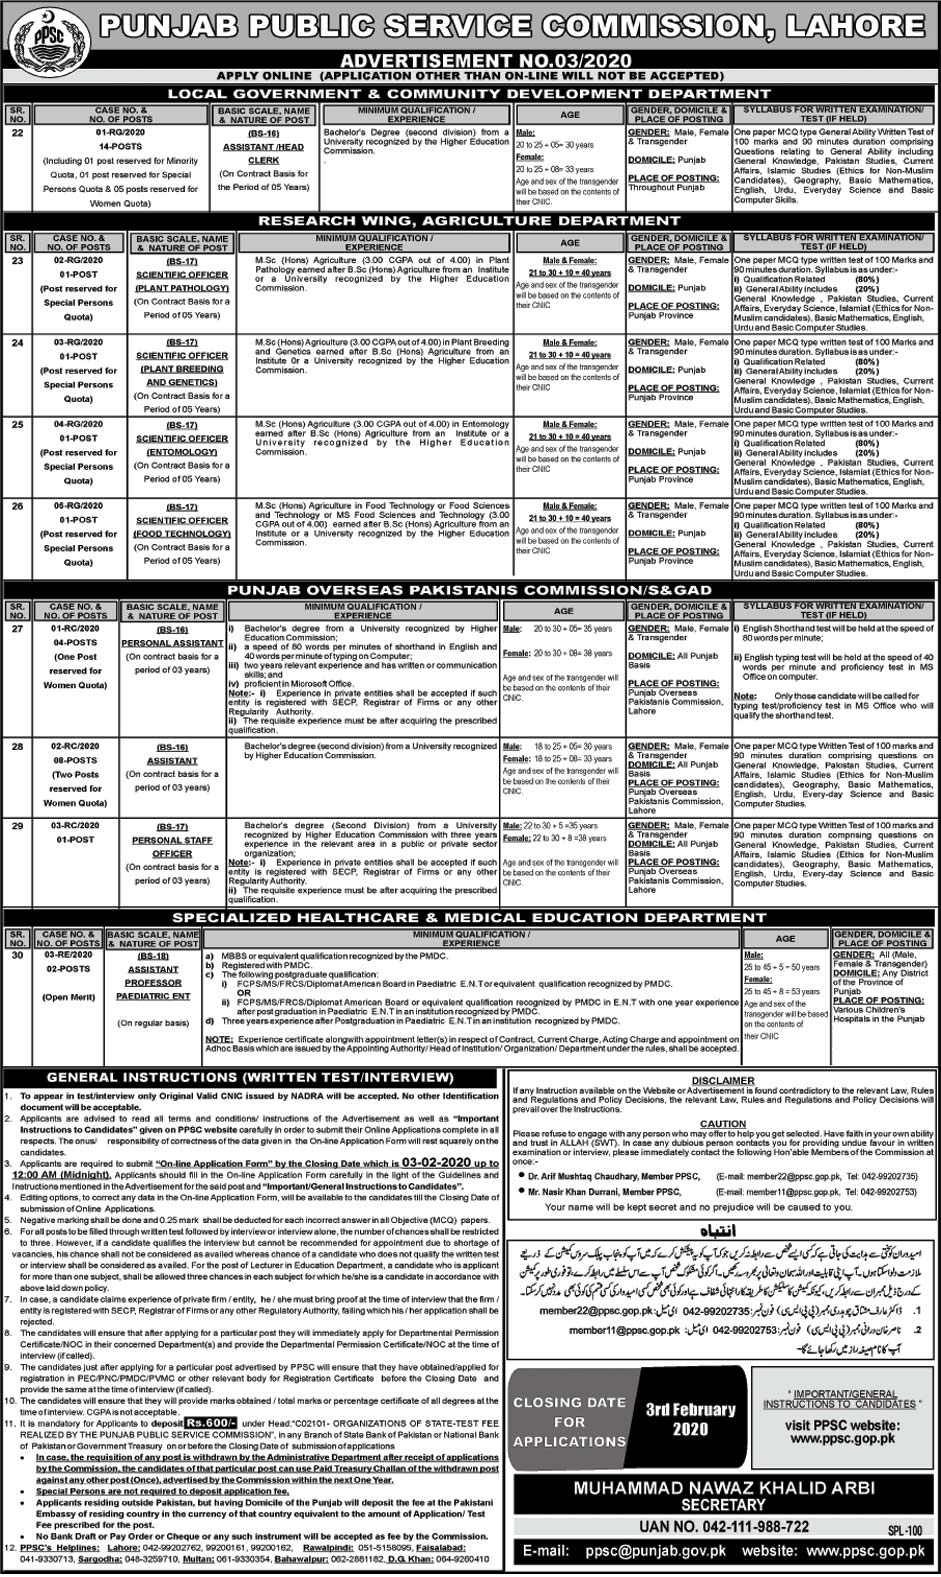 PPSC Jobs Punjab Public Service Commission 19 January 2020